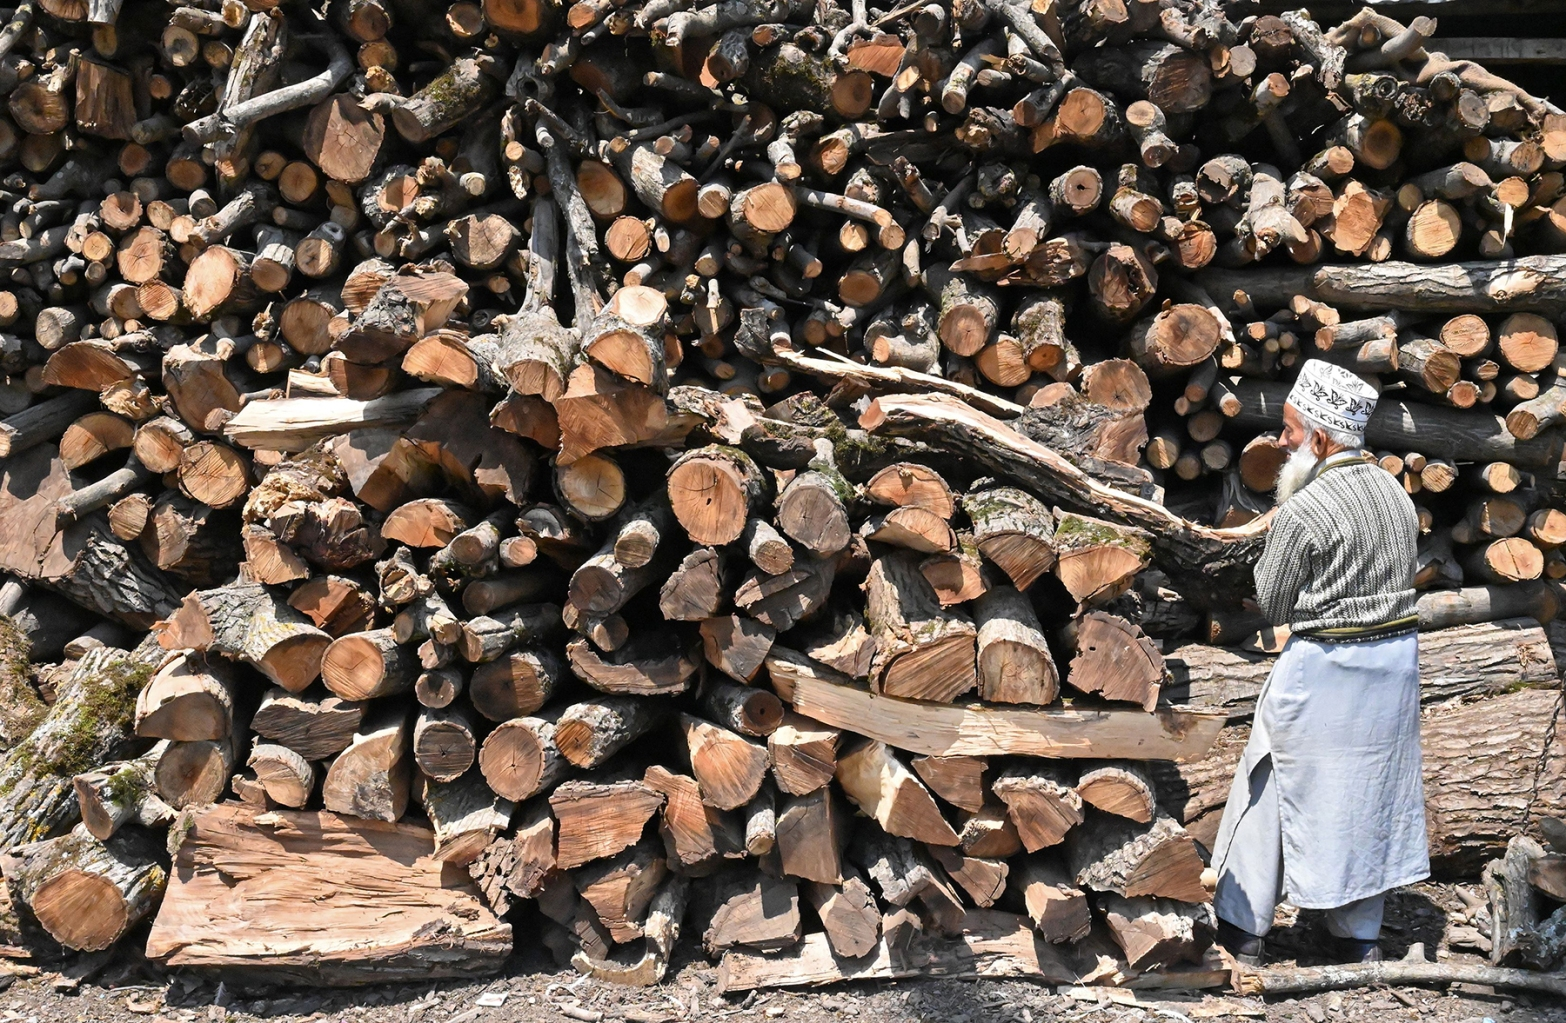 An elderly Kashmiri man stands next to a large pile of firewood in Srinagar on May 21. TAUSEEF MUSTAFA/AFP/Getty Images